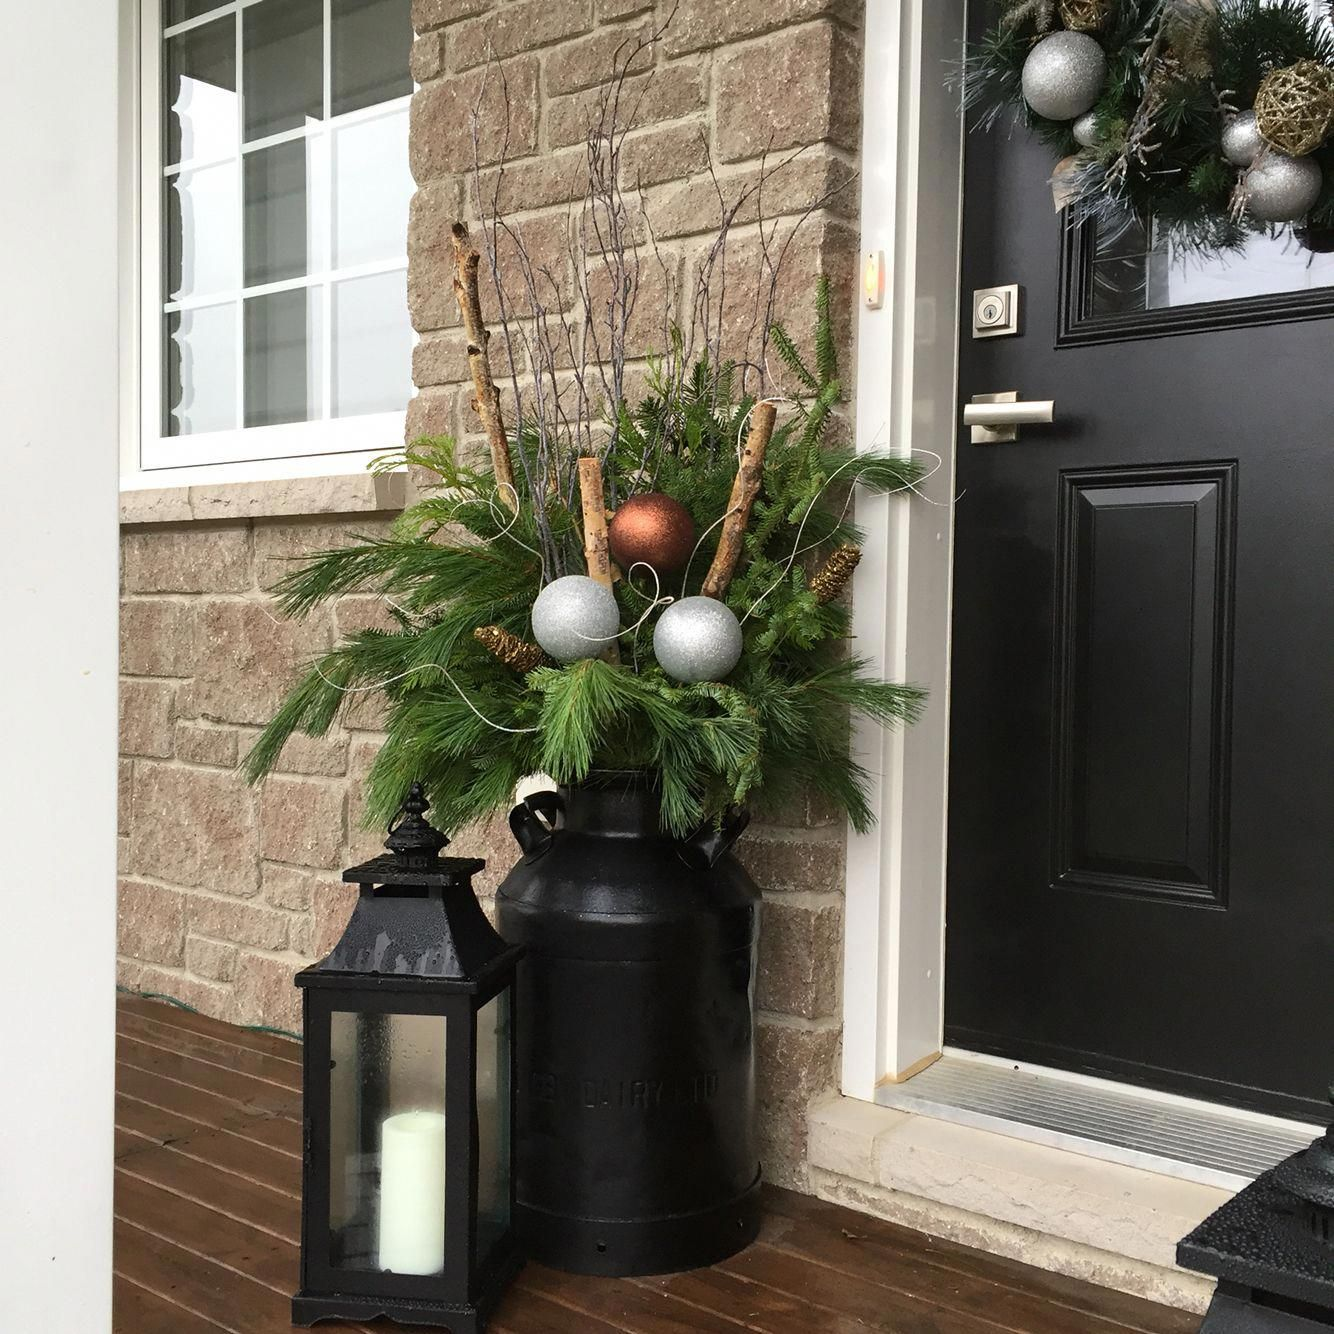 Noma Christmas Decorations: Christmas Milk Can Planter And NOMA Lantern More